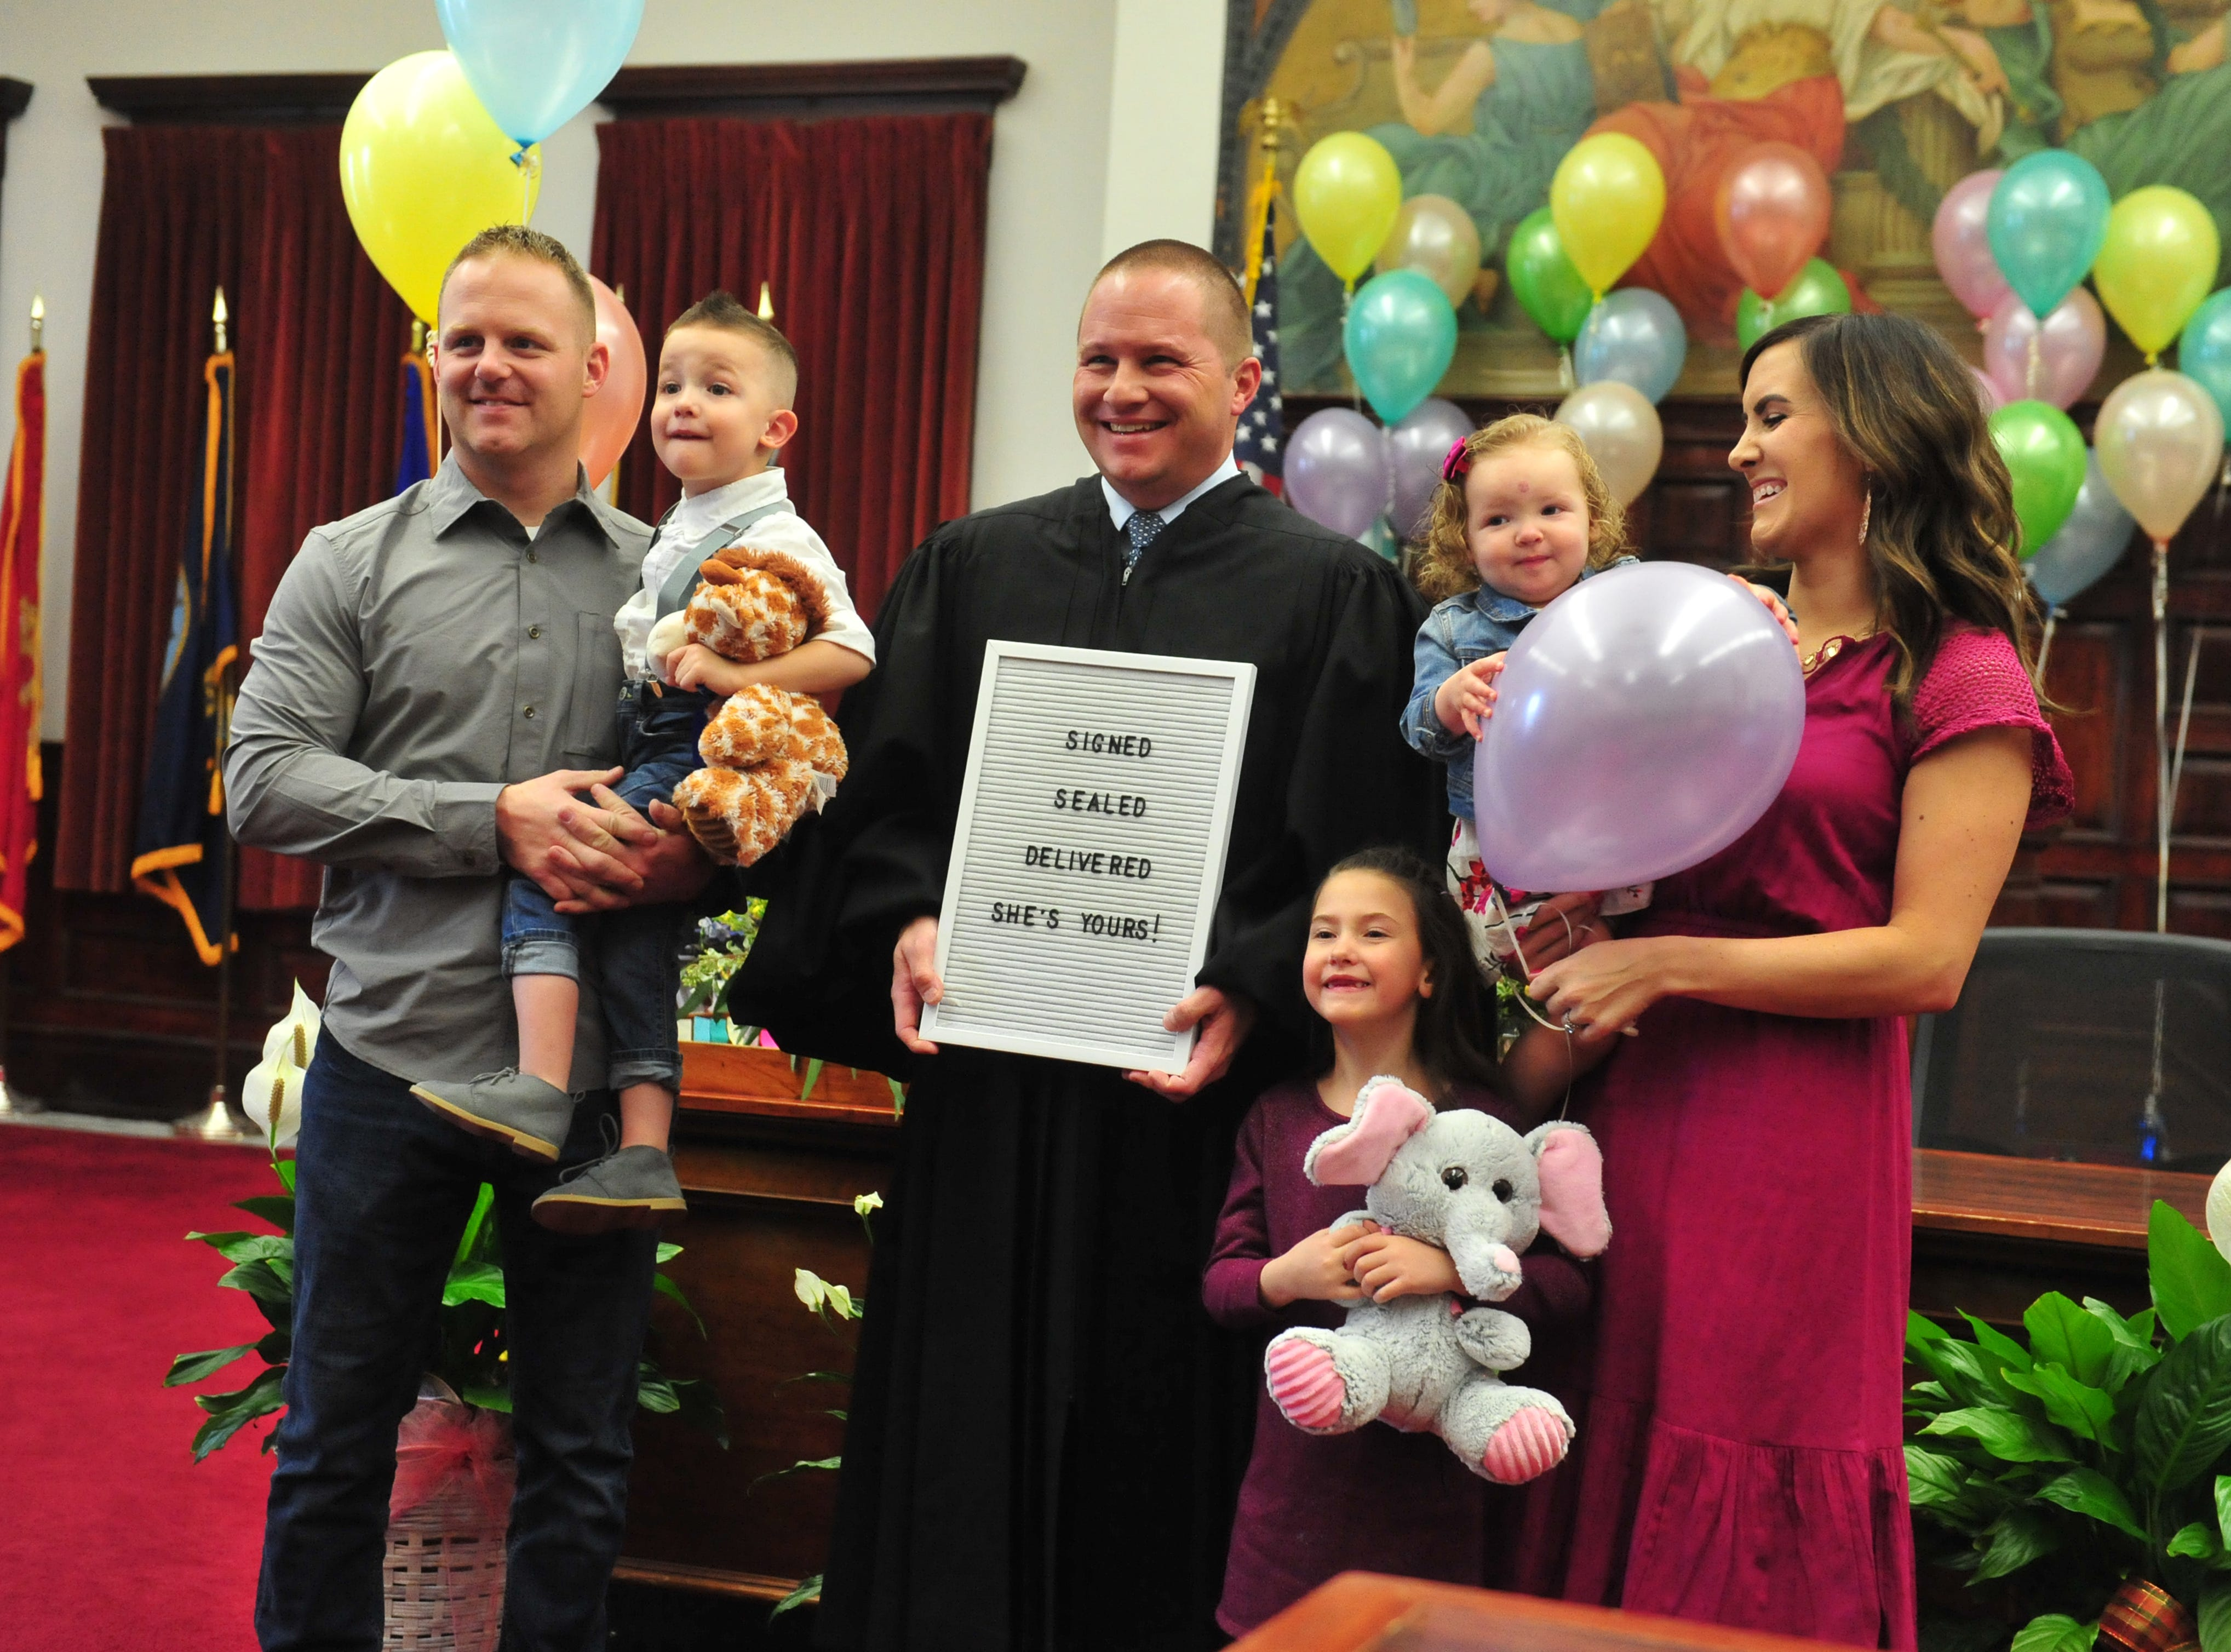 The Ogden family poses for photos with Judge Greg Pinski after the adoption of one-year-old Everly was finalized at the Great Falls Adoption Day celebration on Friday in the Cascade County Courthouse.